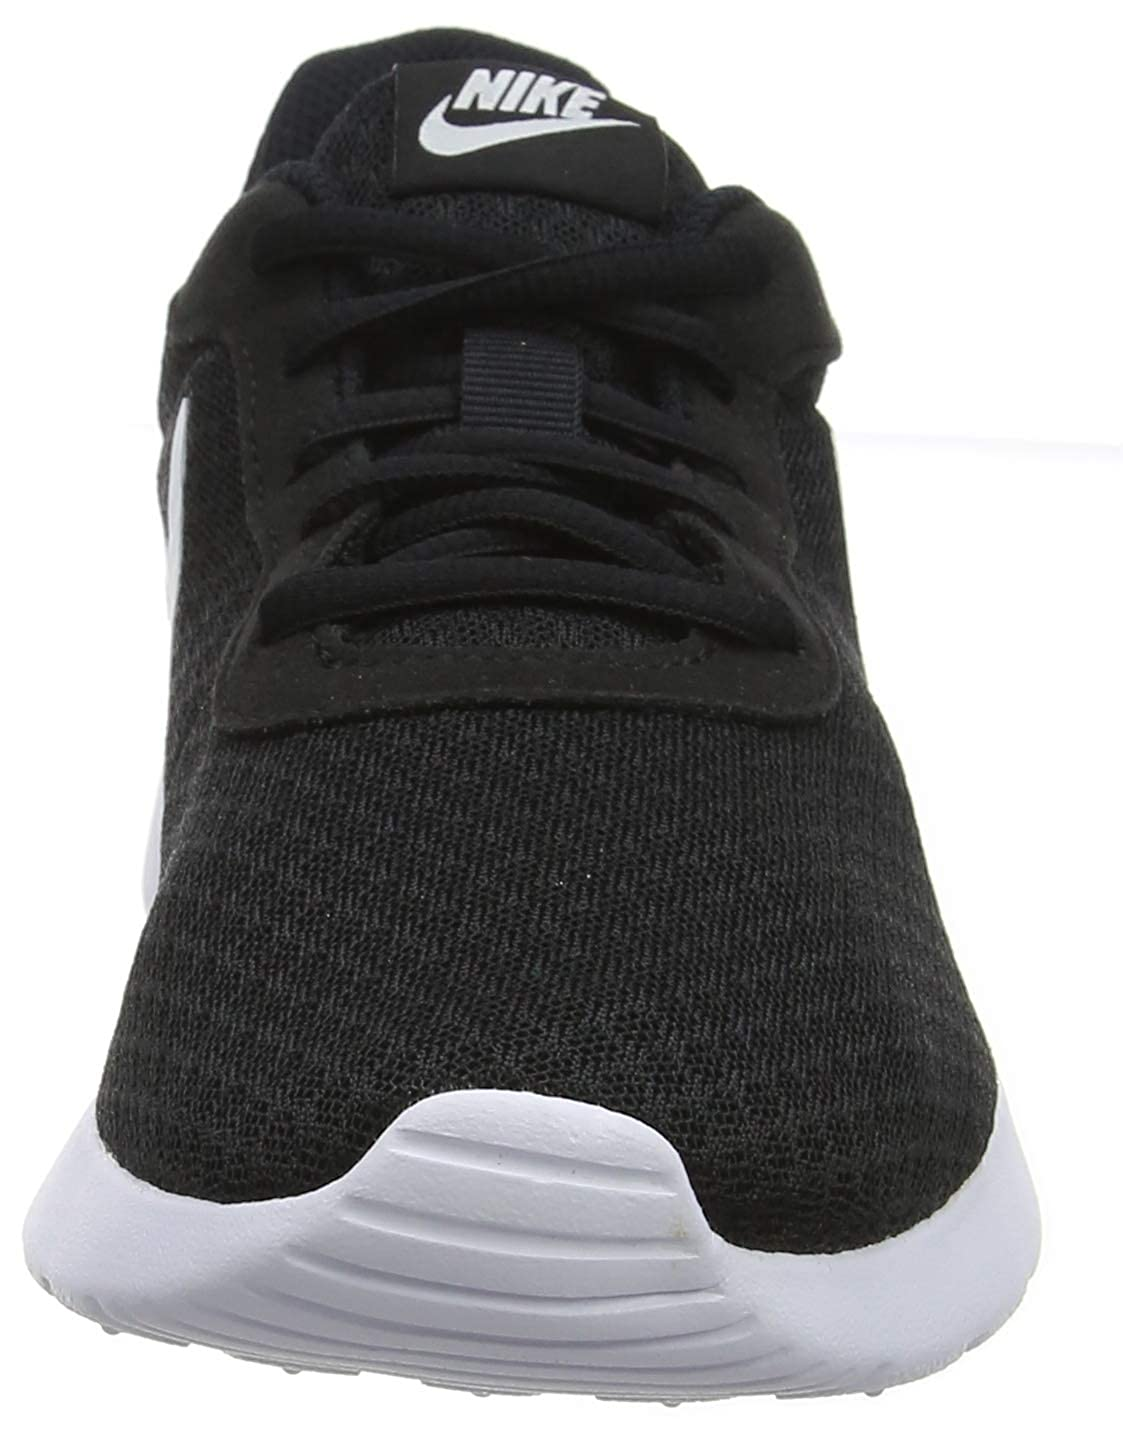 premium selection 1d349 8be94 Amazon.com   NIKE Women s Tanjun Running Shoes   Fashion Sneakers